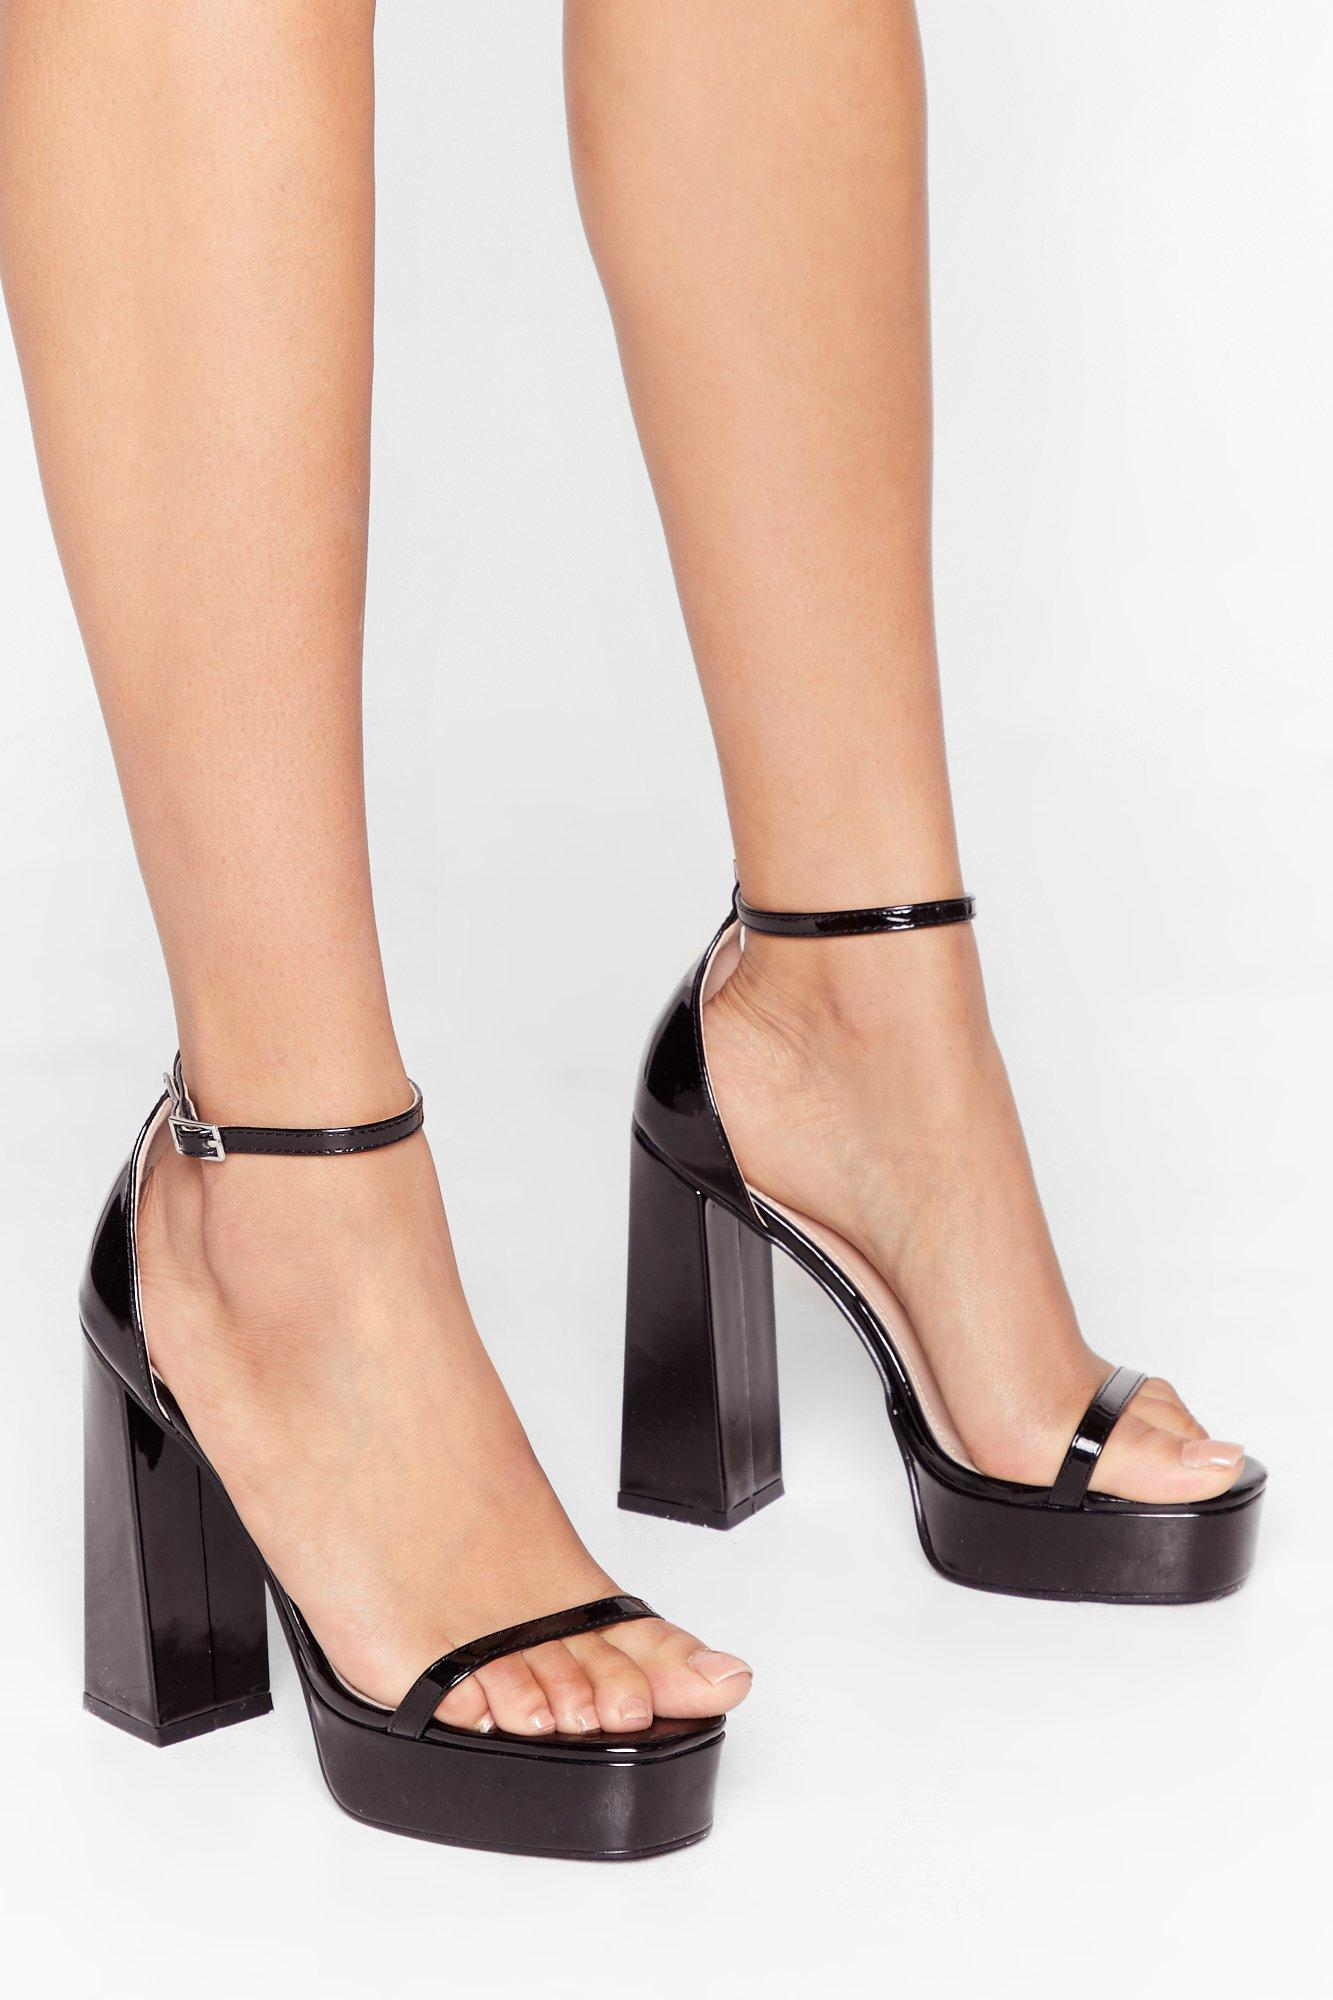 Image of Gimme a Boost Patent Platform Heels